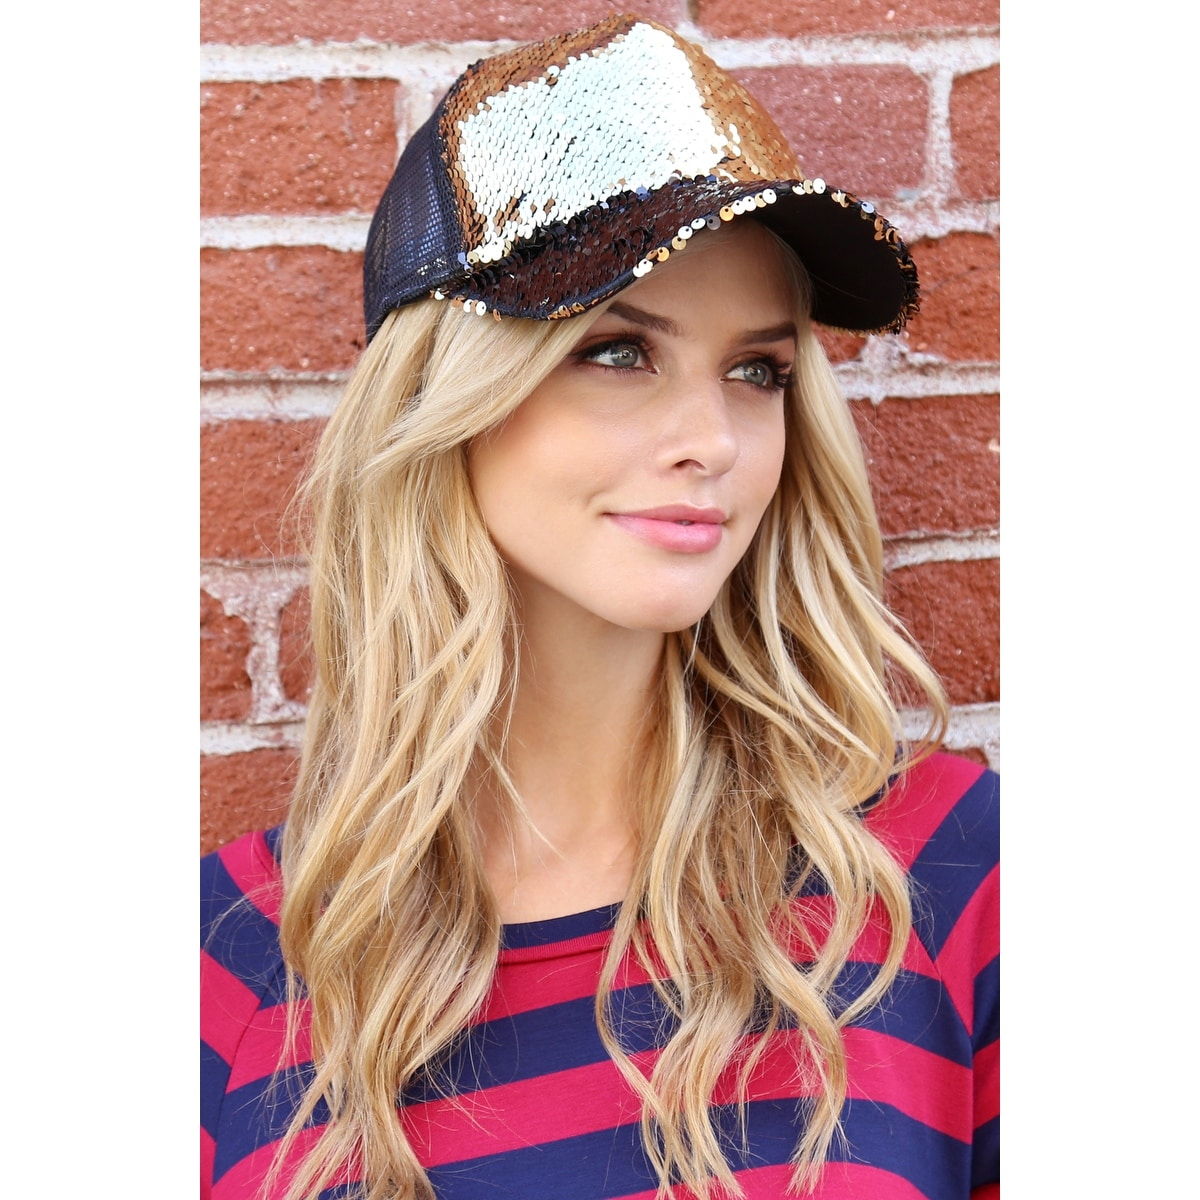 c35d0e1f1189f Shop Riah Fashion s Two Tone Sequin Baseball Cap - Free Shipping On Orders  Over  45 - Overstock - 25364375